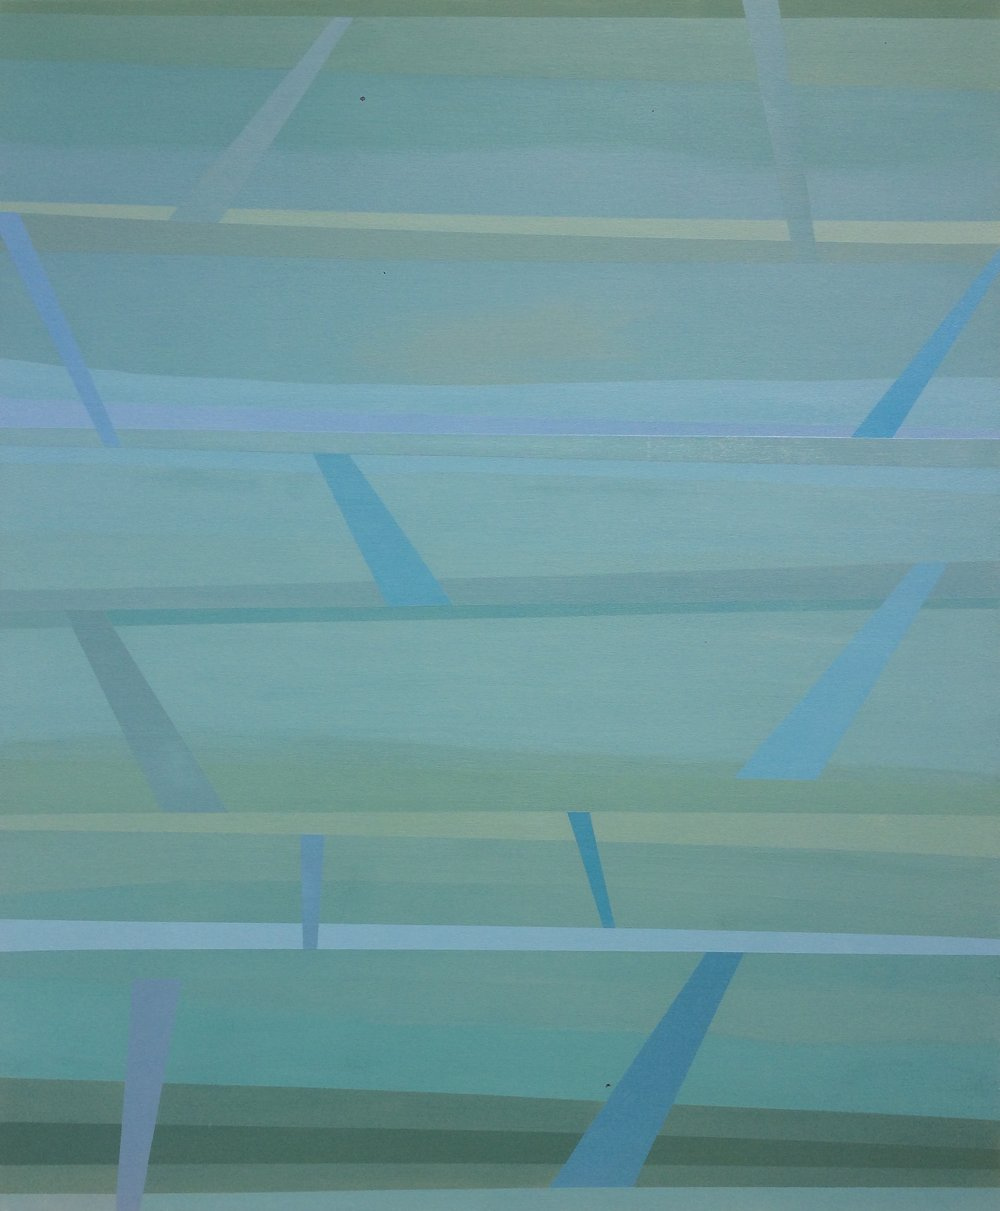 """Vertical Levels"", 2016, 58"" X 48"", Acrylic on canvas."